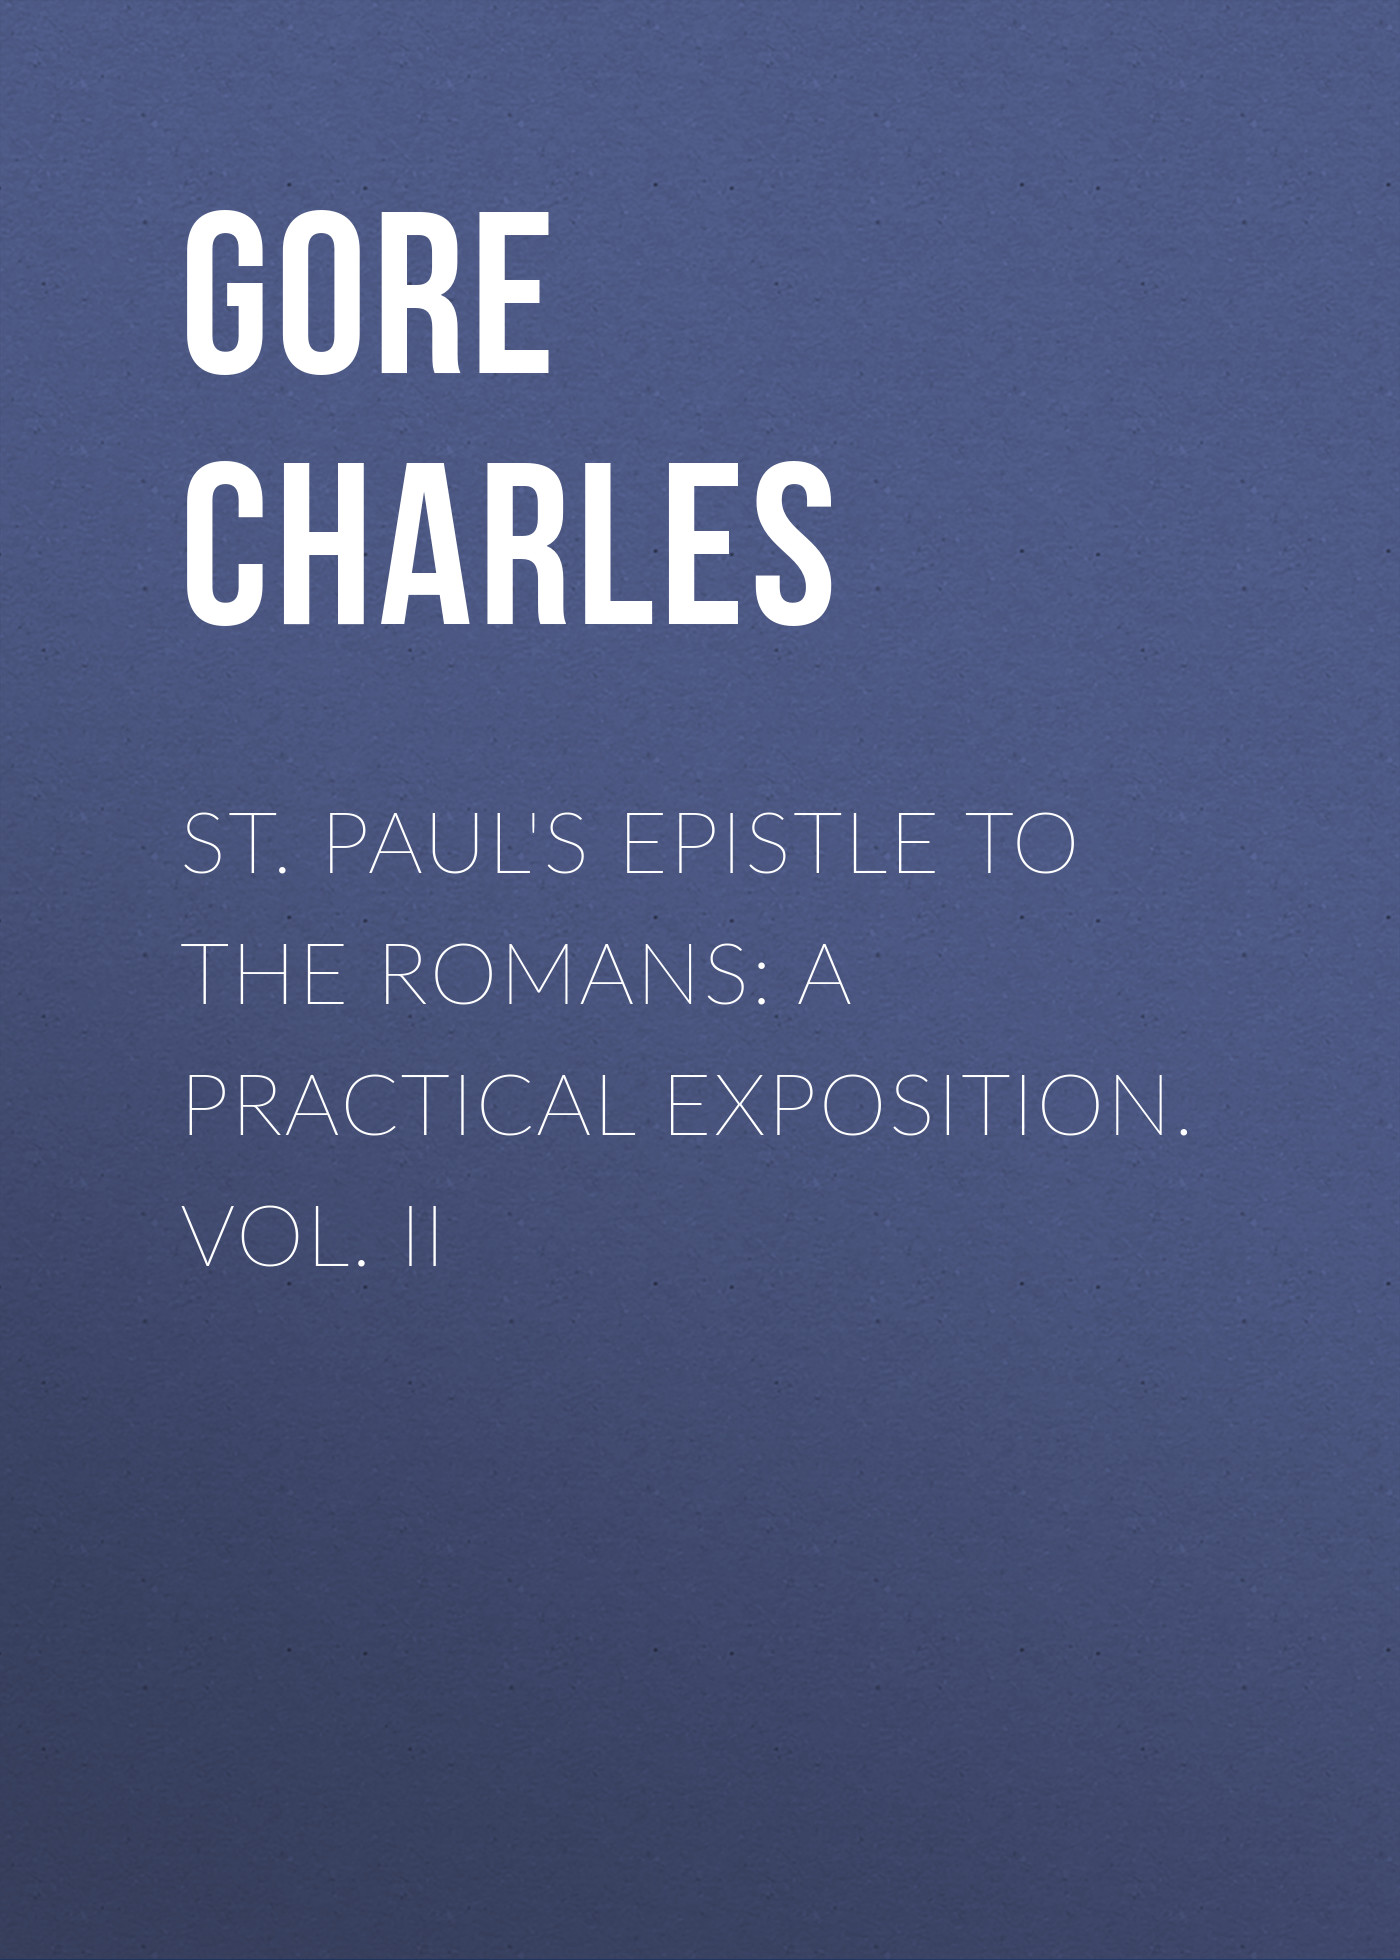 Gore Charles St. Paul's Epistle to the Romans: A Practical Exposition. Vol. II edwards thomas charles the expositor s bible the epistle to the hebrews